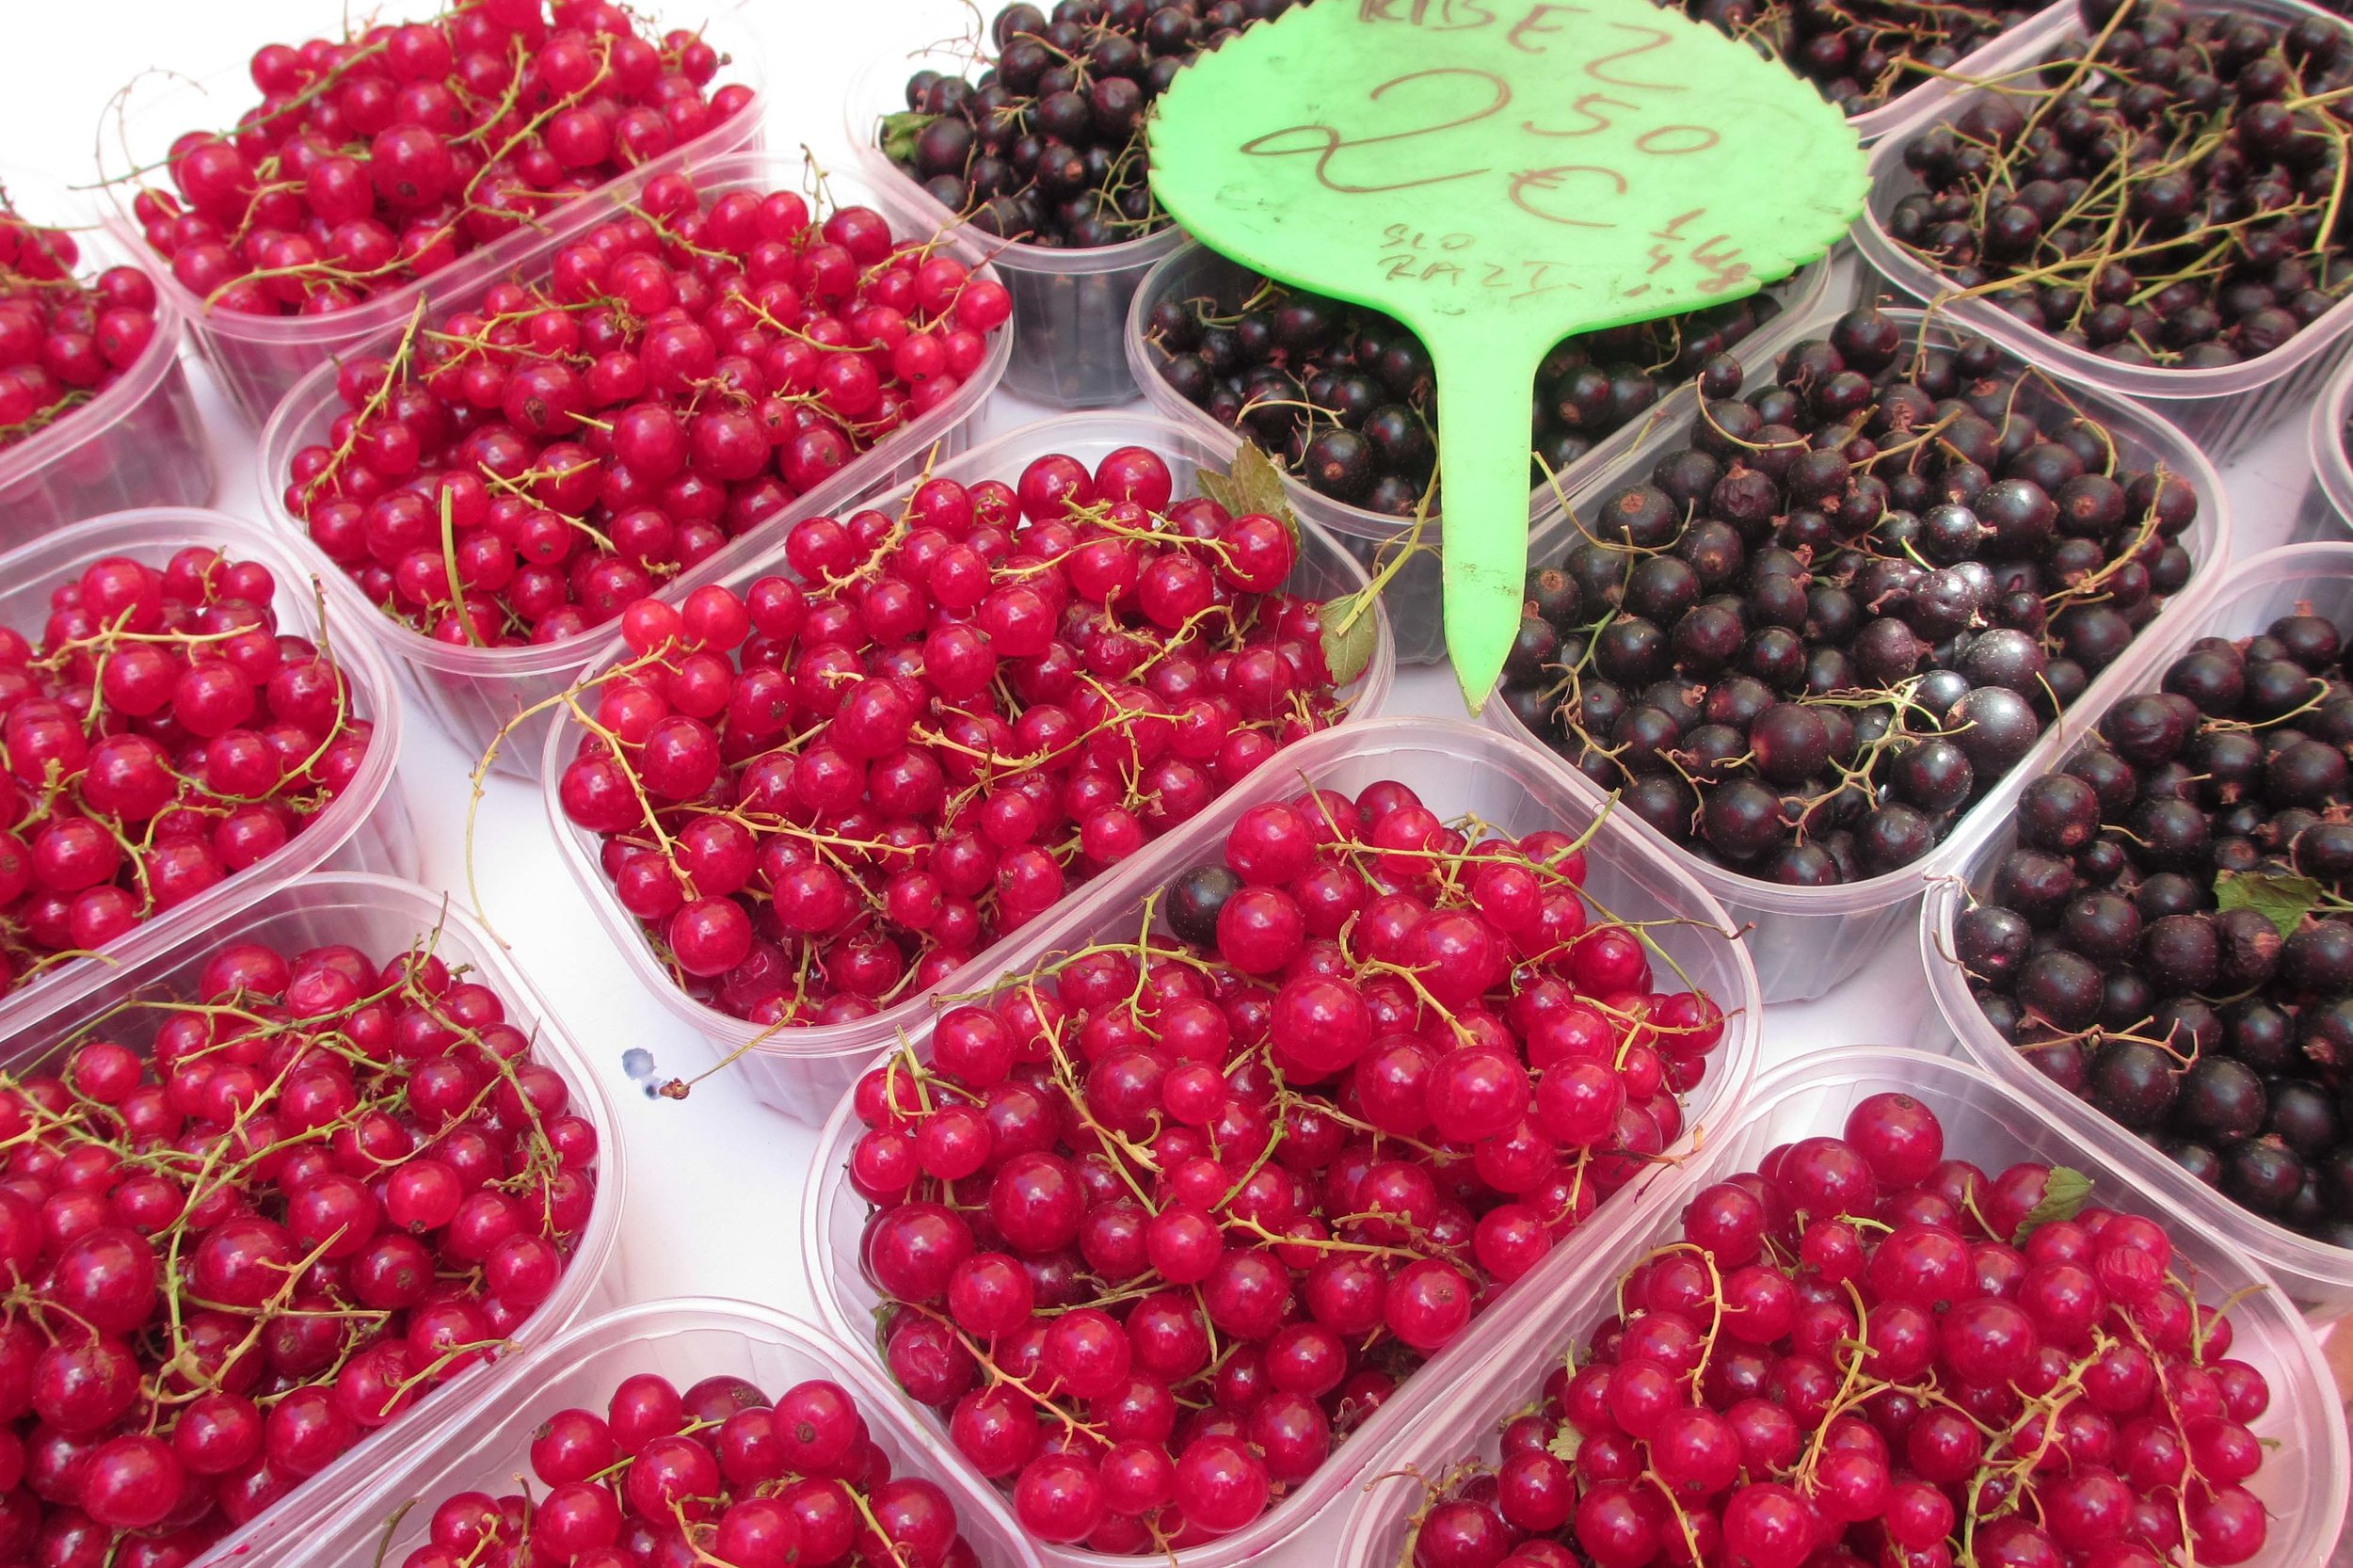 I couldn't resist the fresh berries at the Ljubljana's Central Market. Image by Sarah Reid